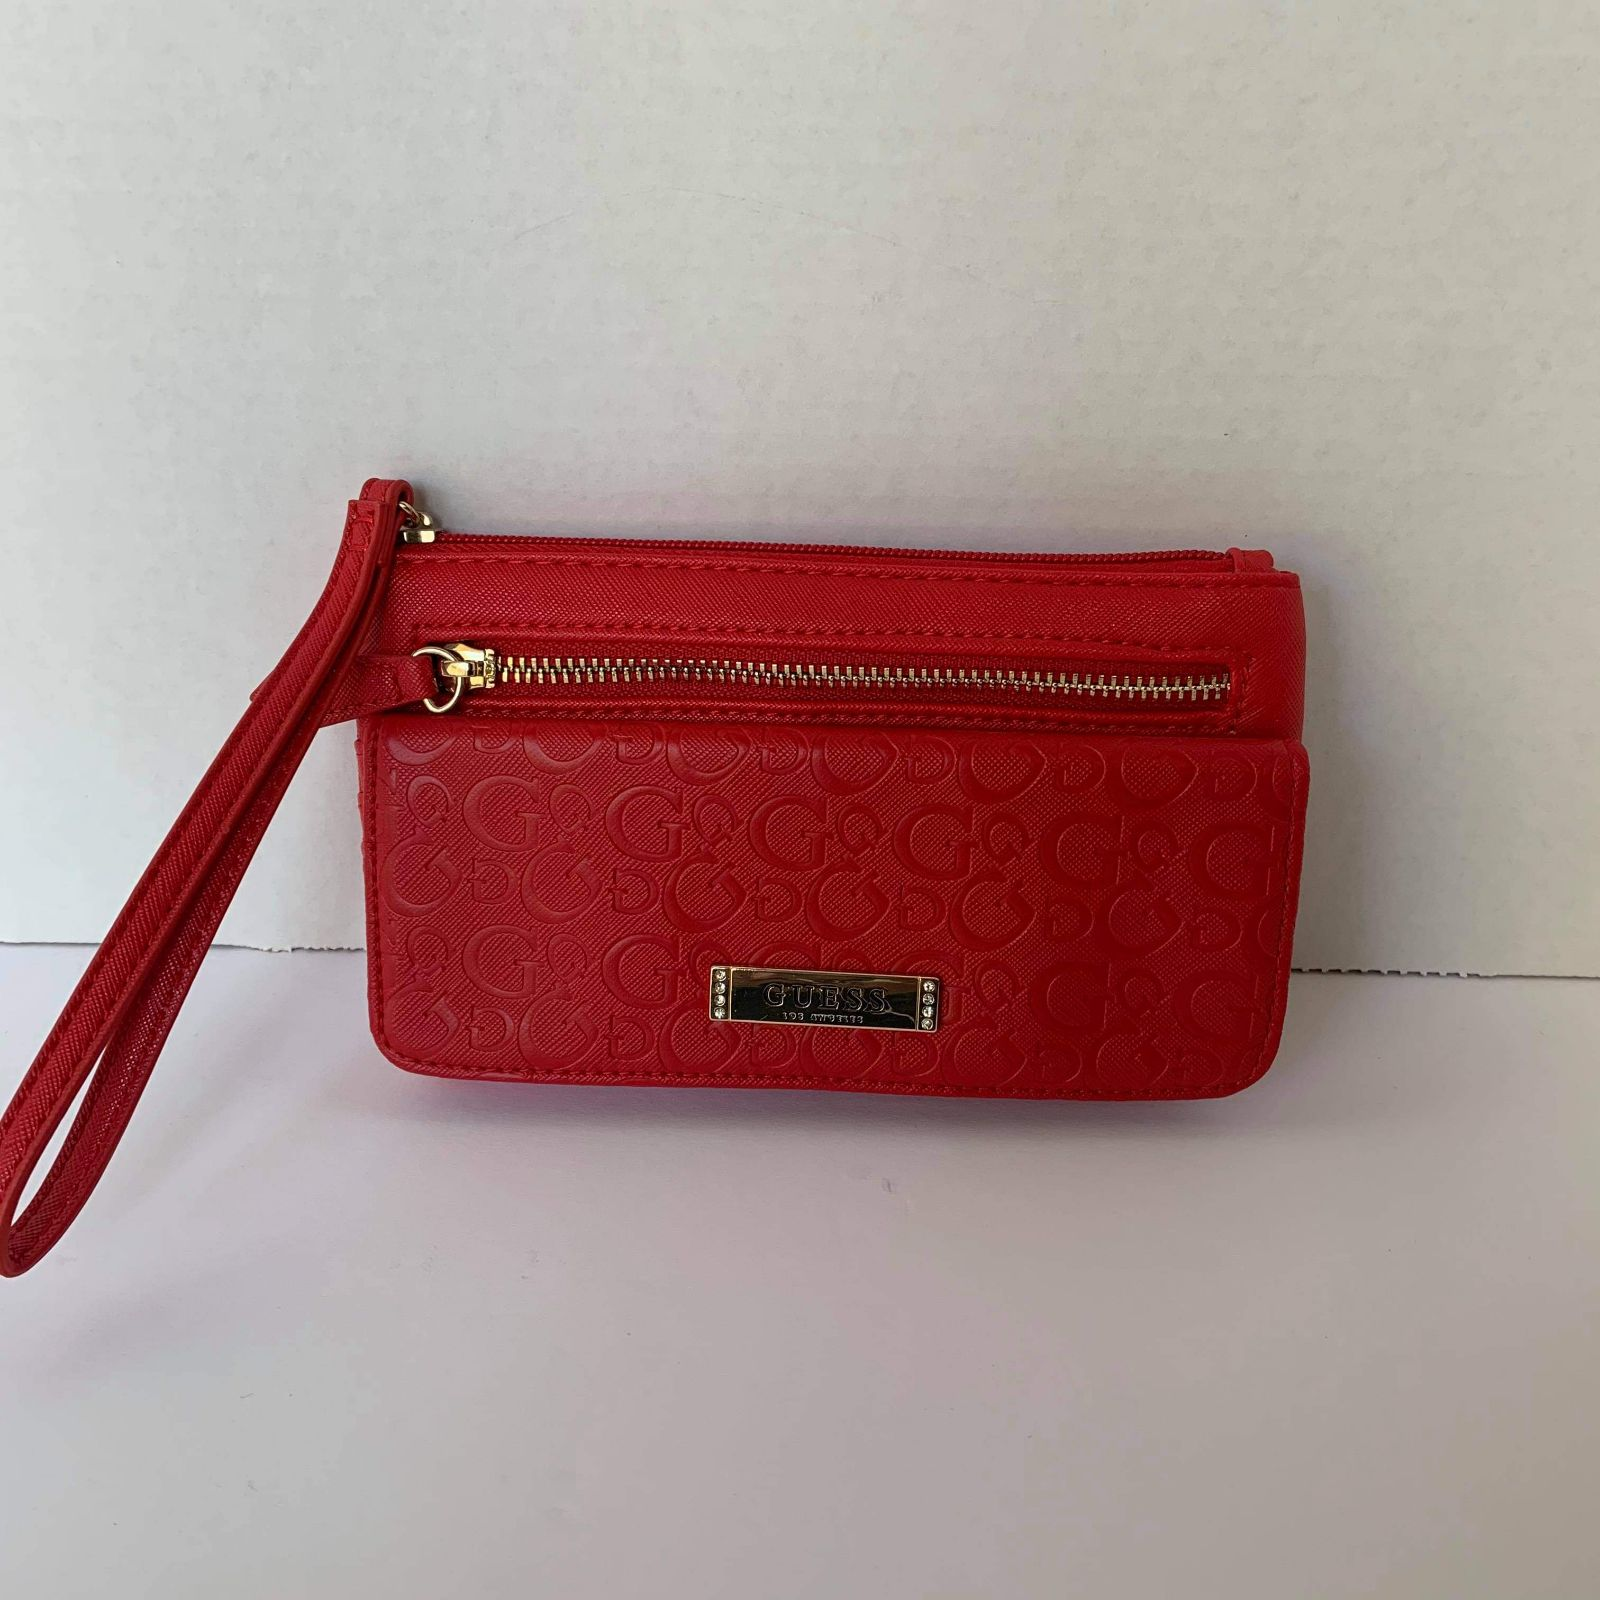 Red Guess Wallet/Wristlet